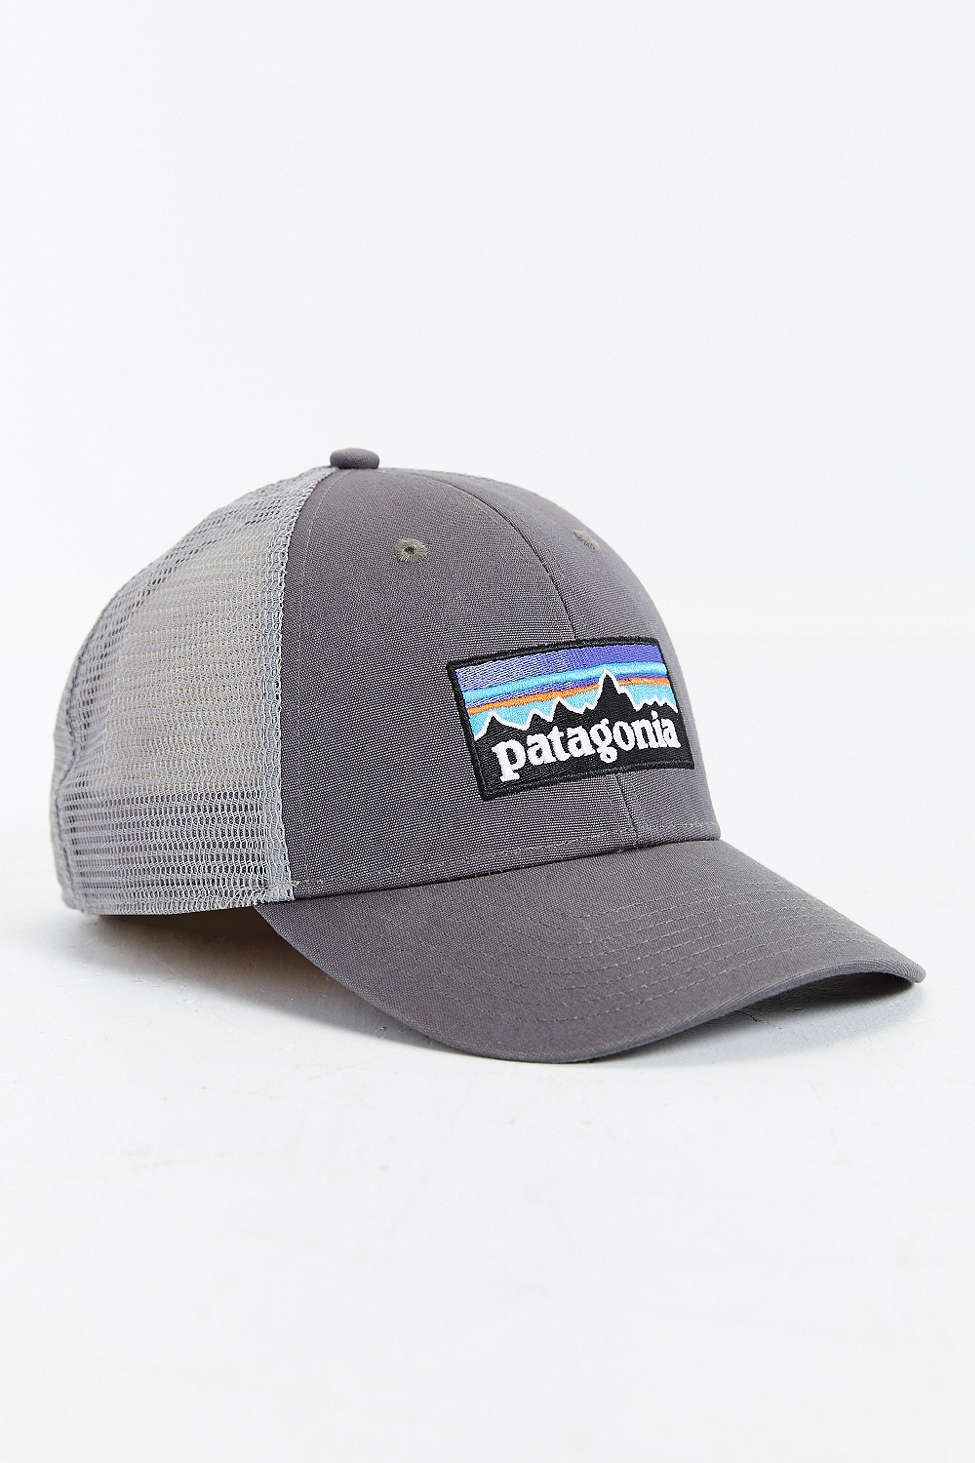 1e3c5ca0f Patagonia P-6 Trucker Hat | My style in 2019 | Patagonia hat, Dress ...